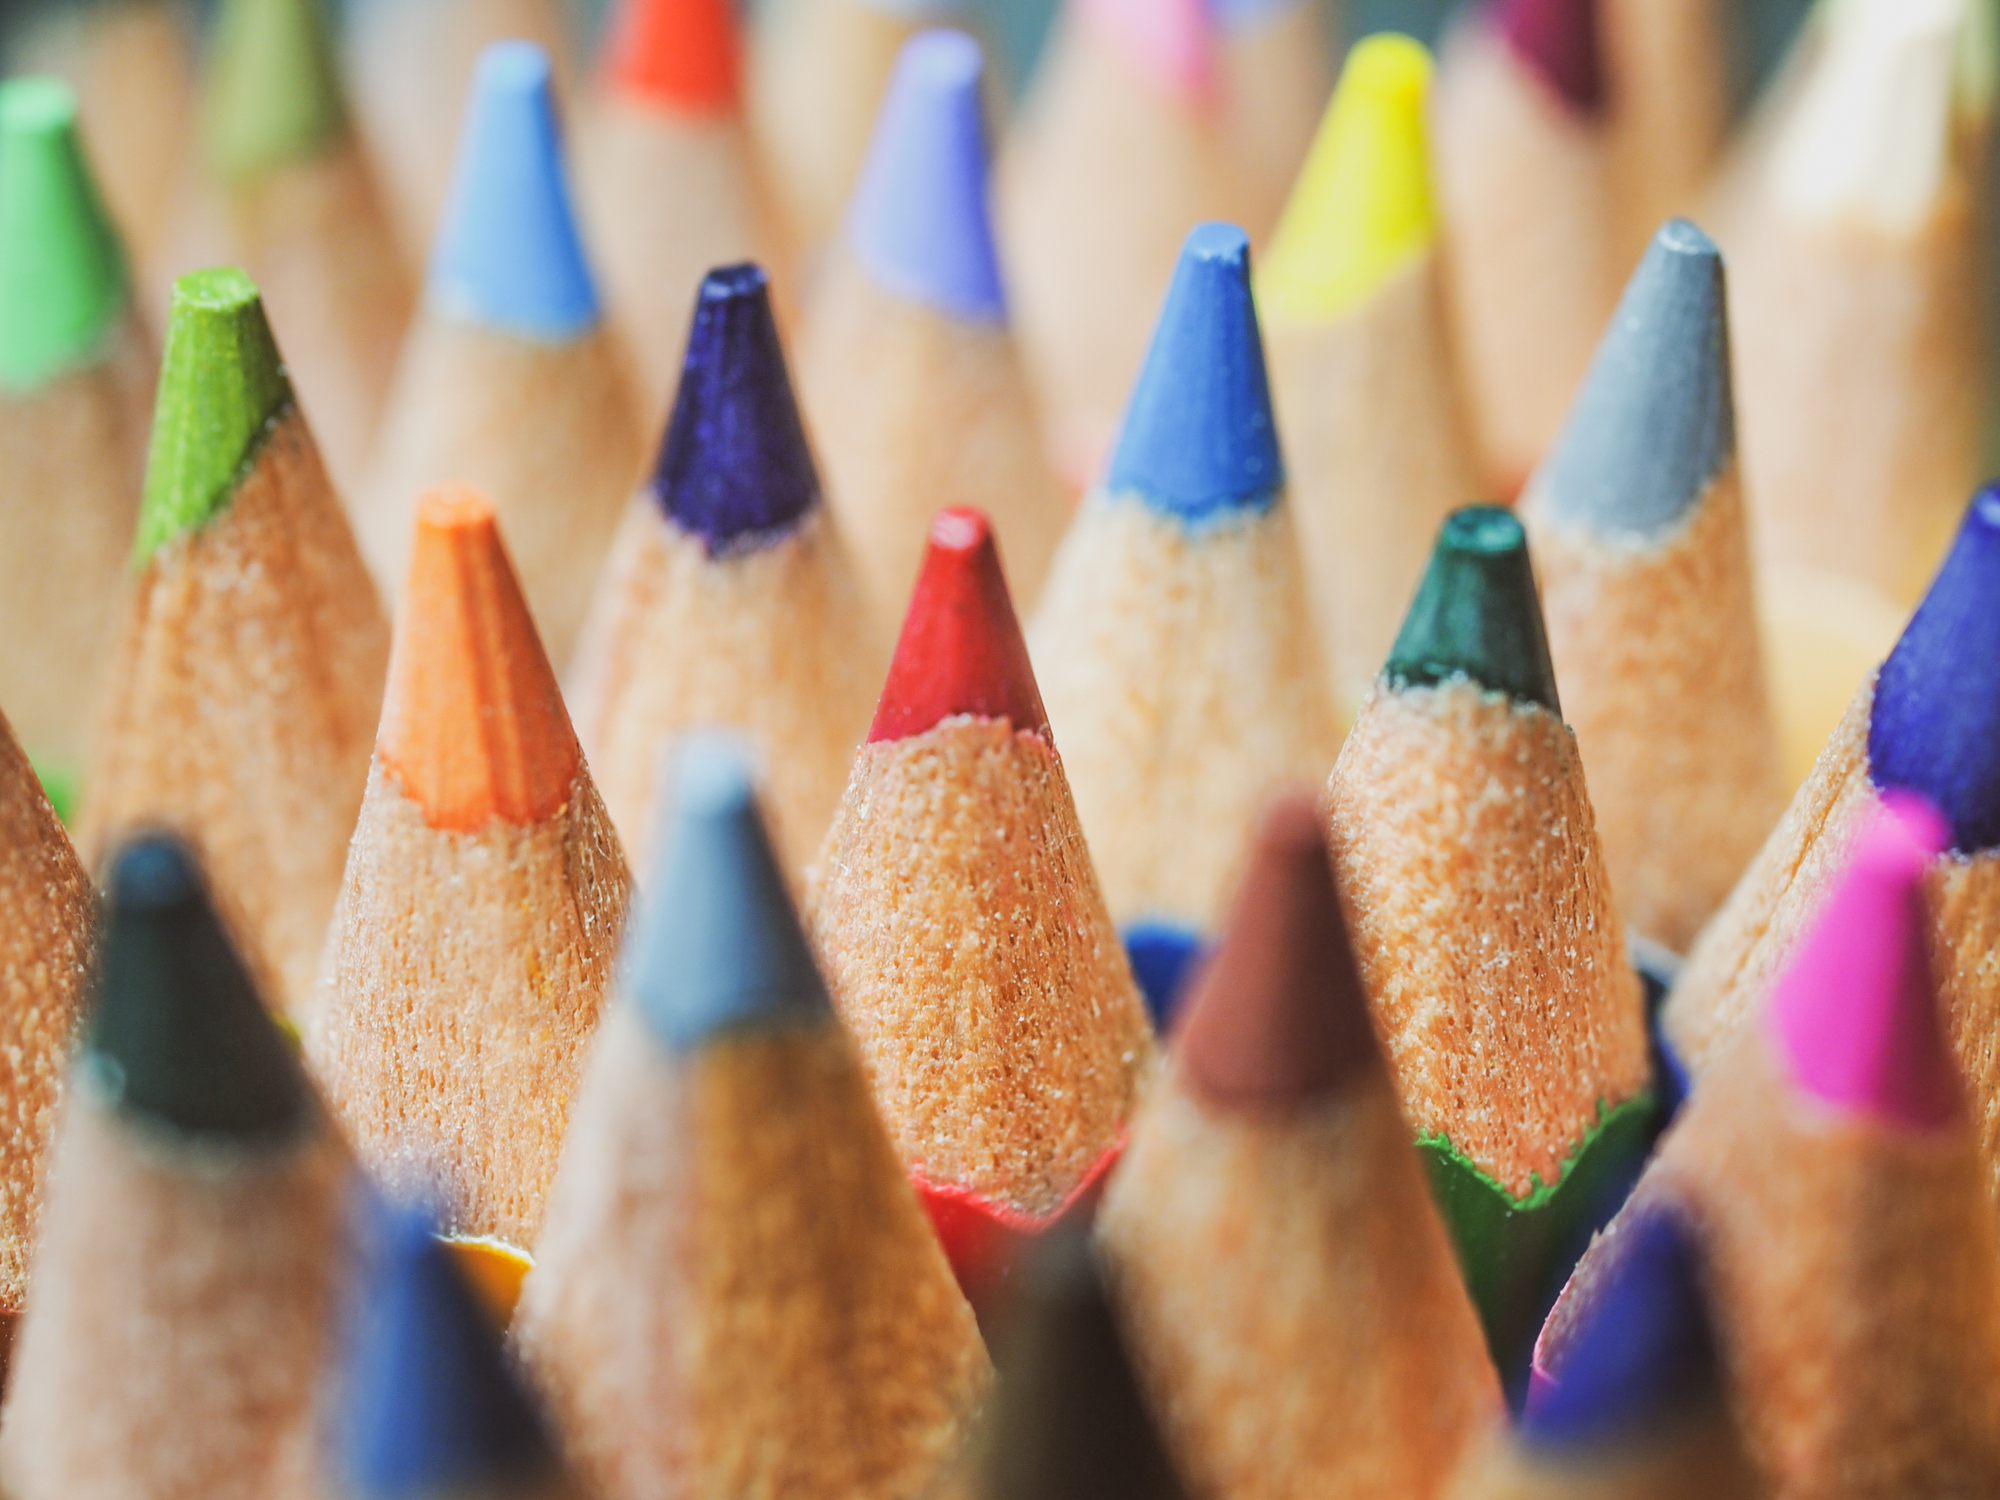 Colored pencils by using macro lens